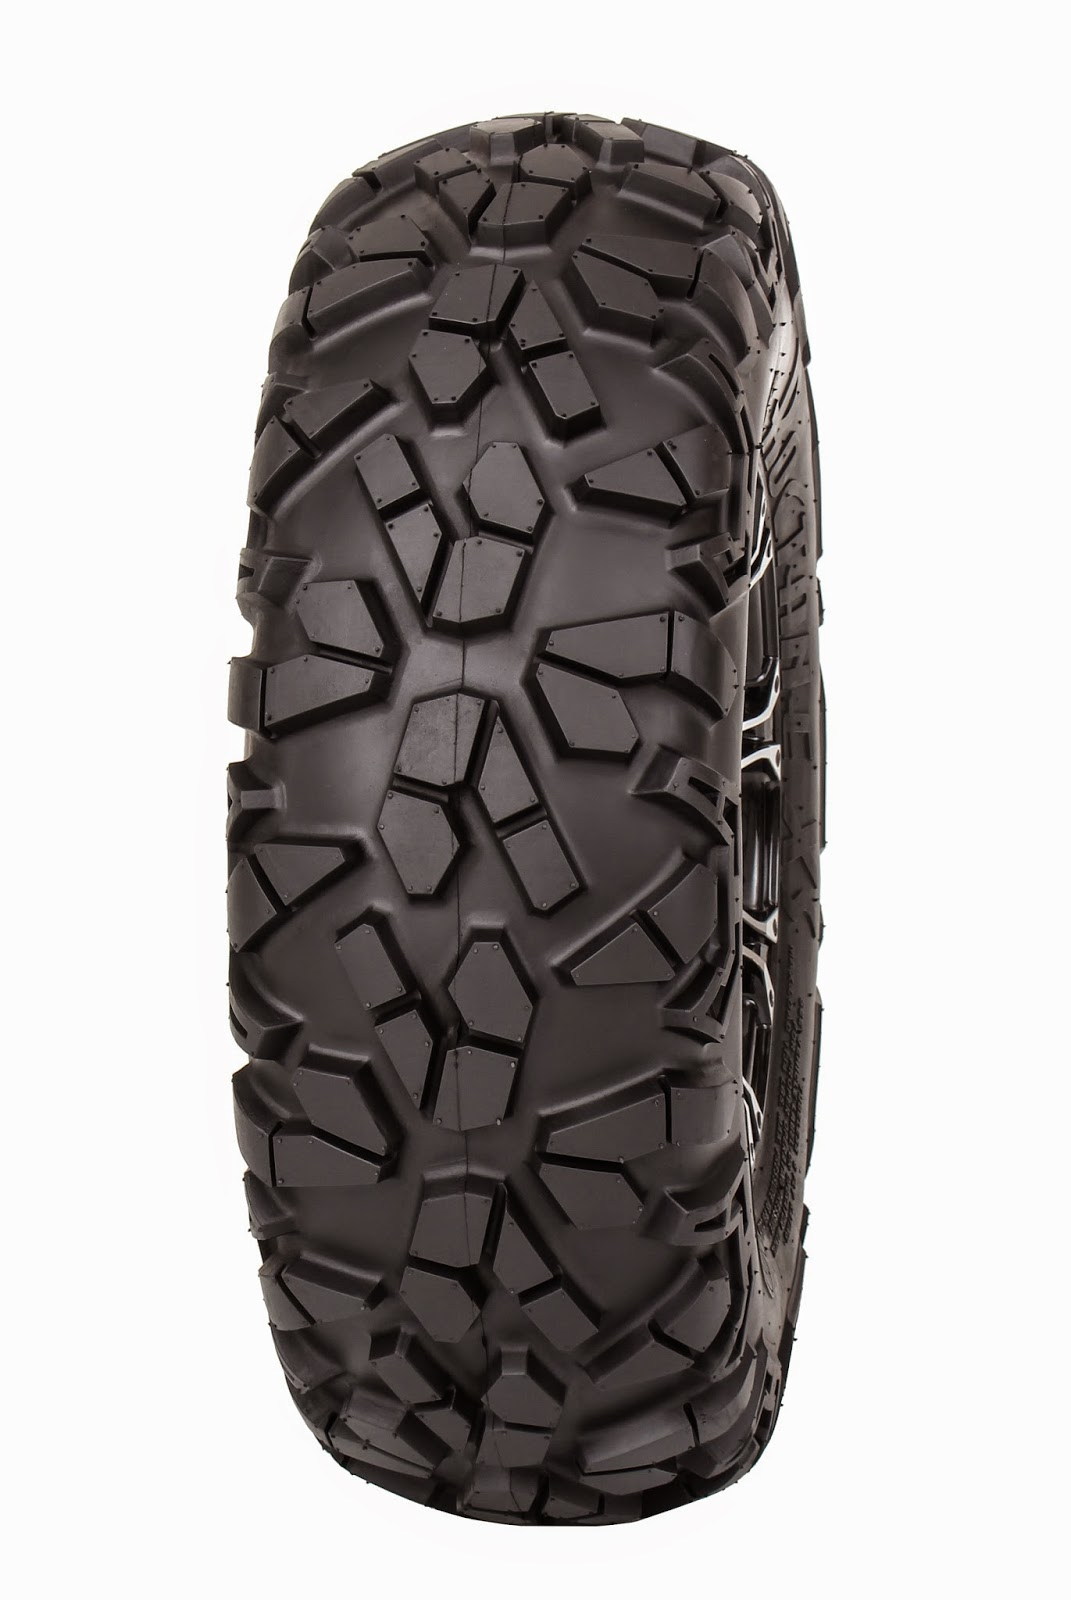 STI Roctane XS tire